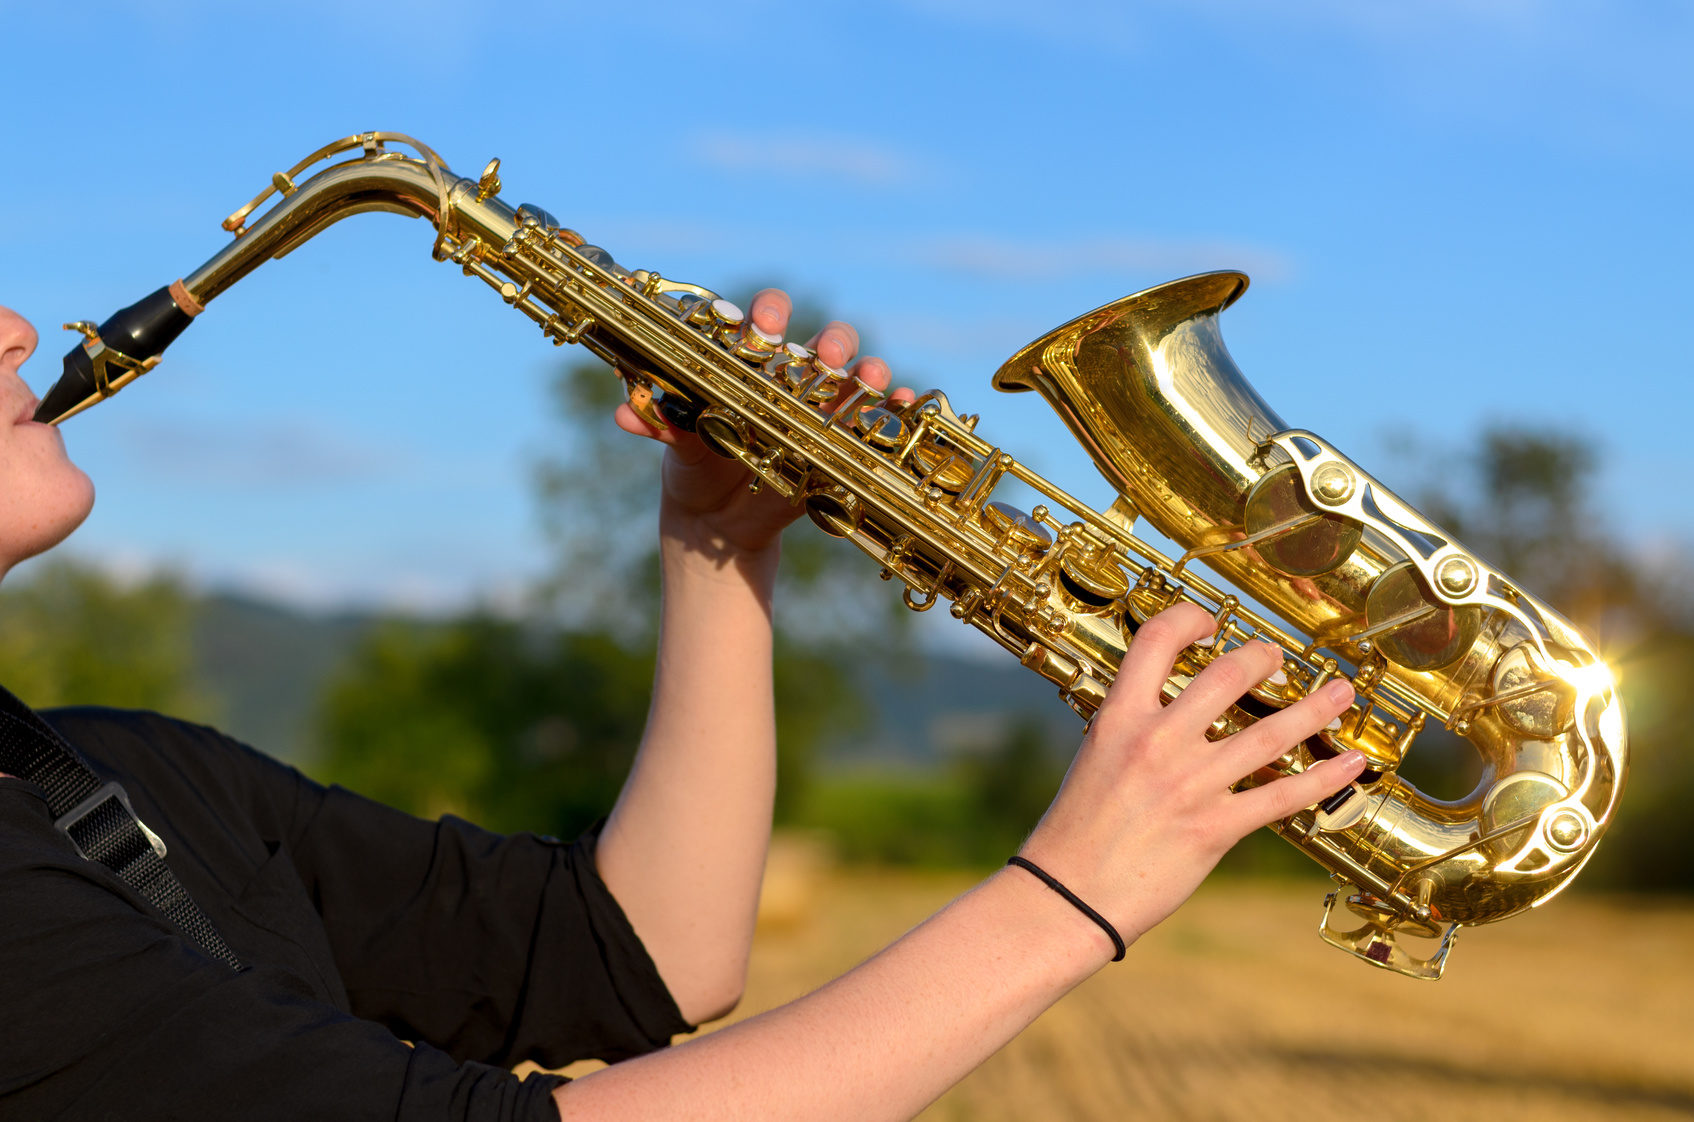 Side close up view of a young woman playing a tenor saxophone outdoors in the countryside raising the instrument in the air against a blue sky